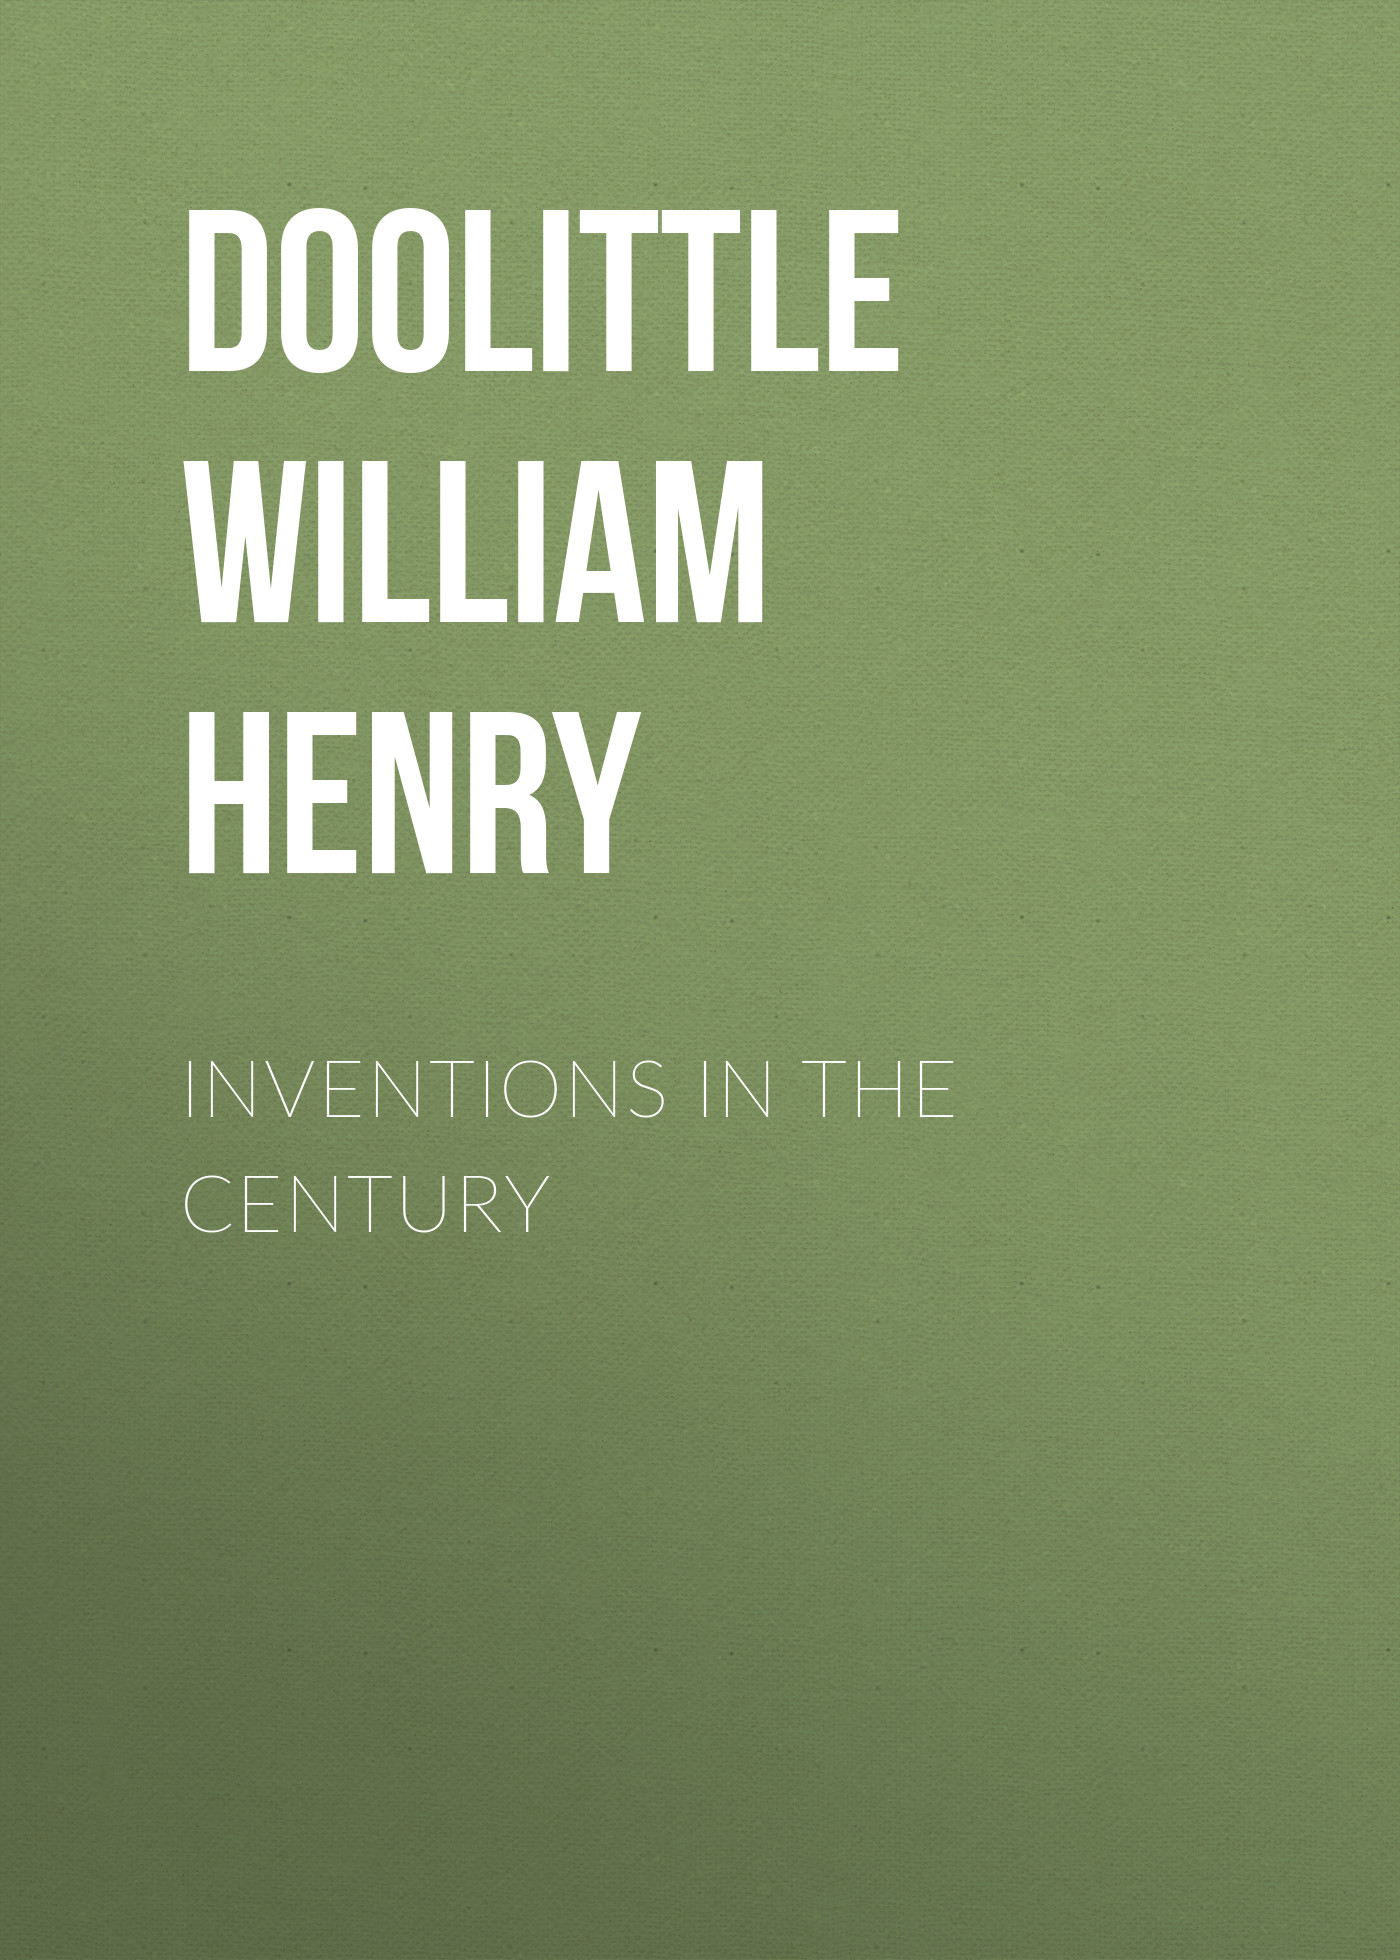 Doolittle William Henry Inventions in the Century